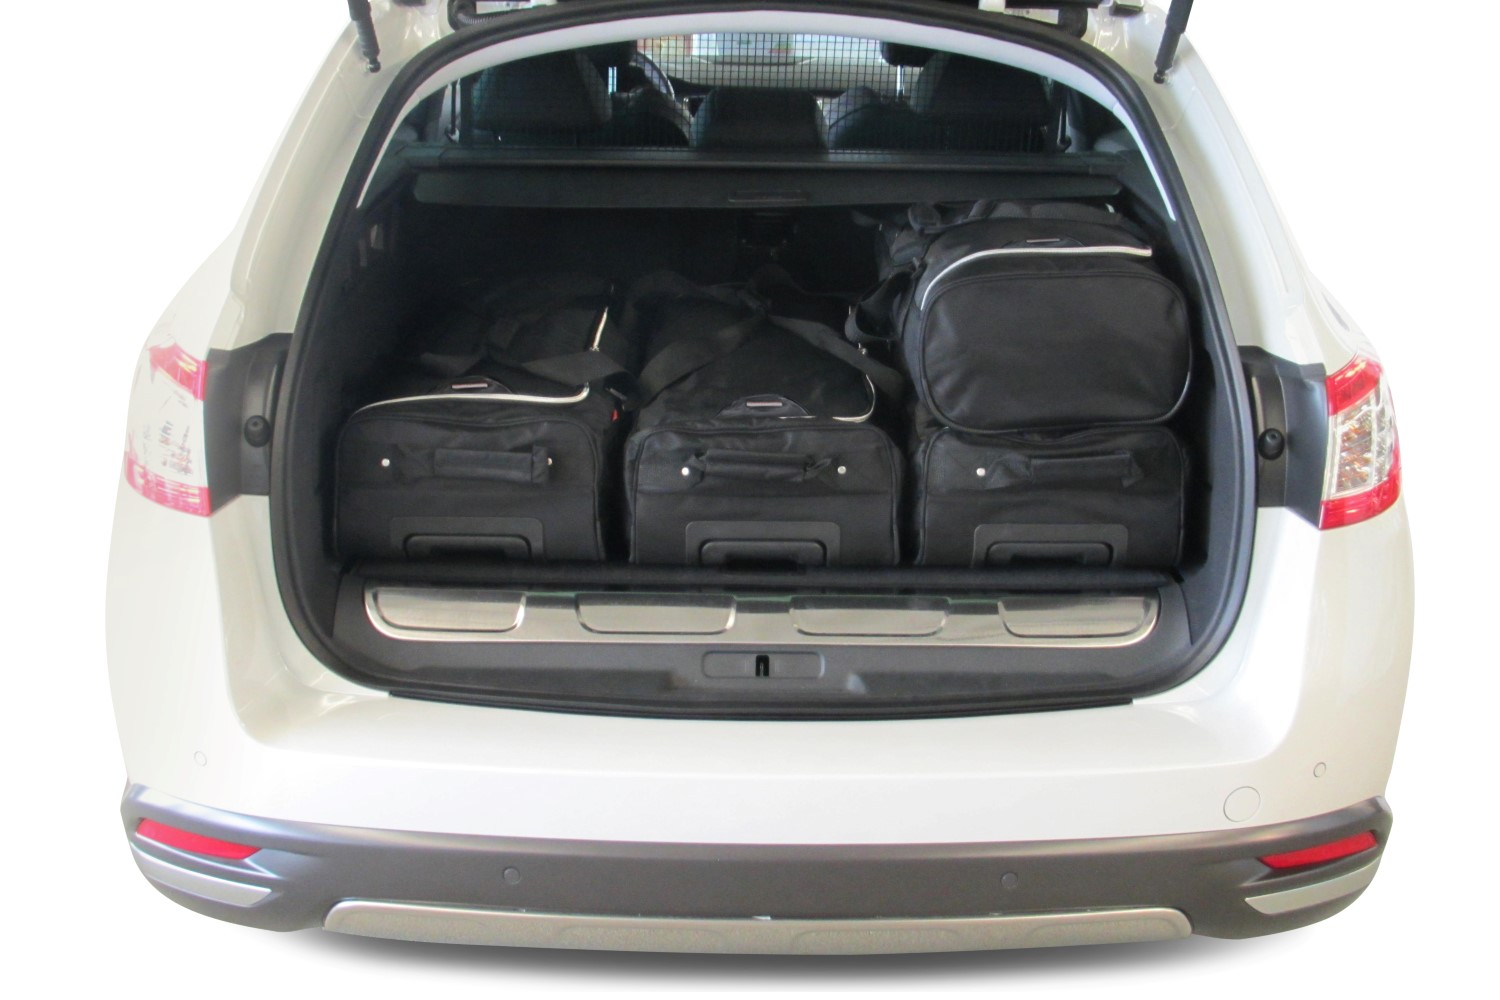 508 peugeot 508 rxh hybrid4 2012 heden car bags reistassenset. Black Bedroom Furniture Sets. Home Design Ideas